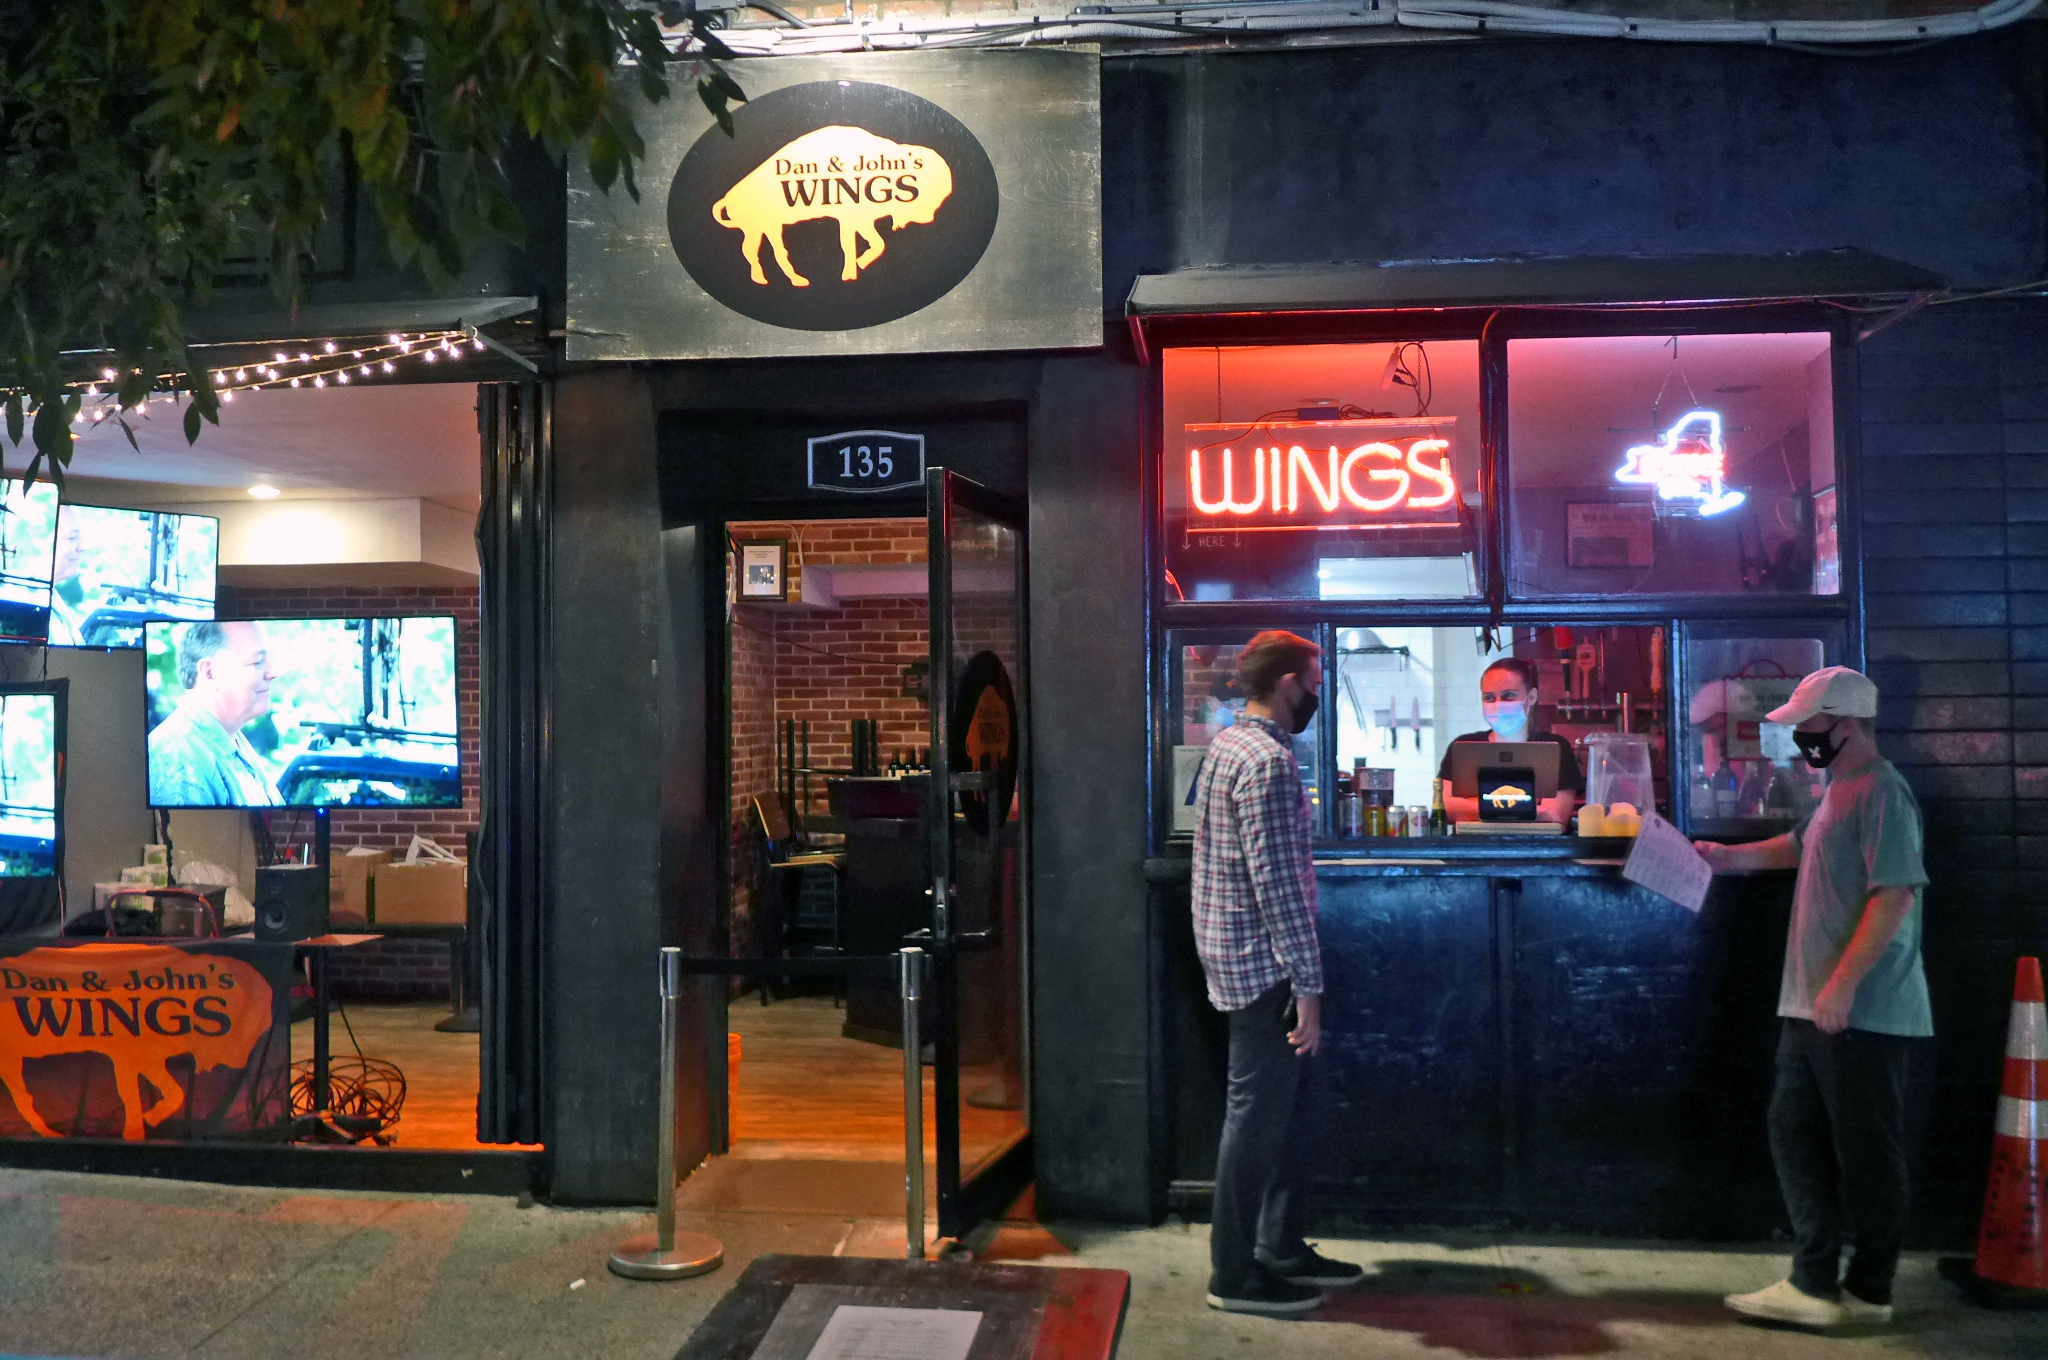 A darkened storefront with a few masked customers and a neon sign Wings.